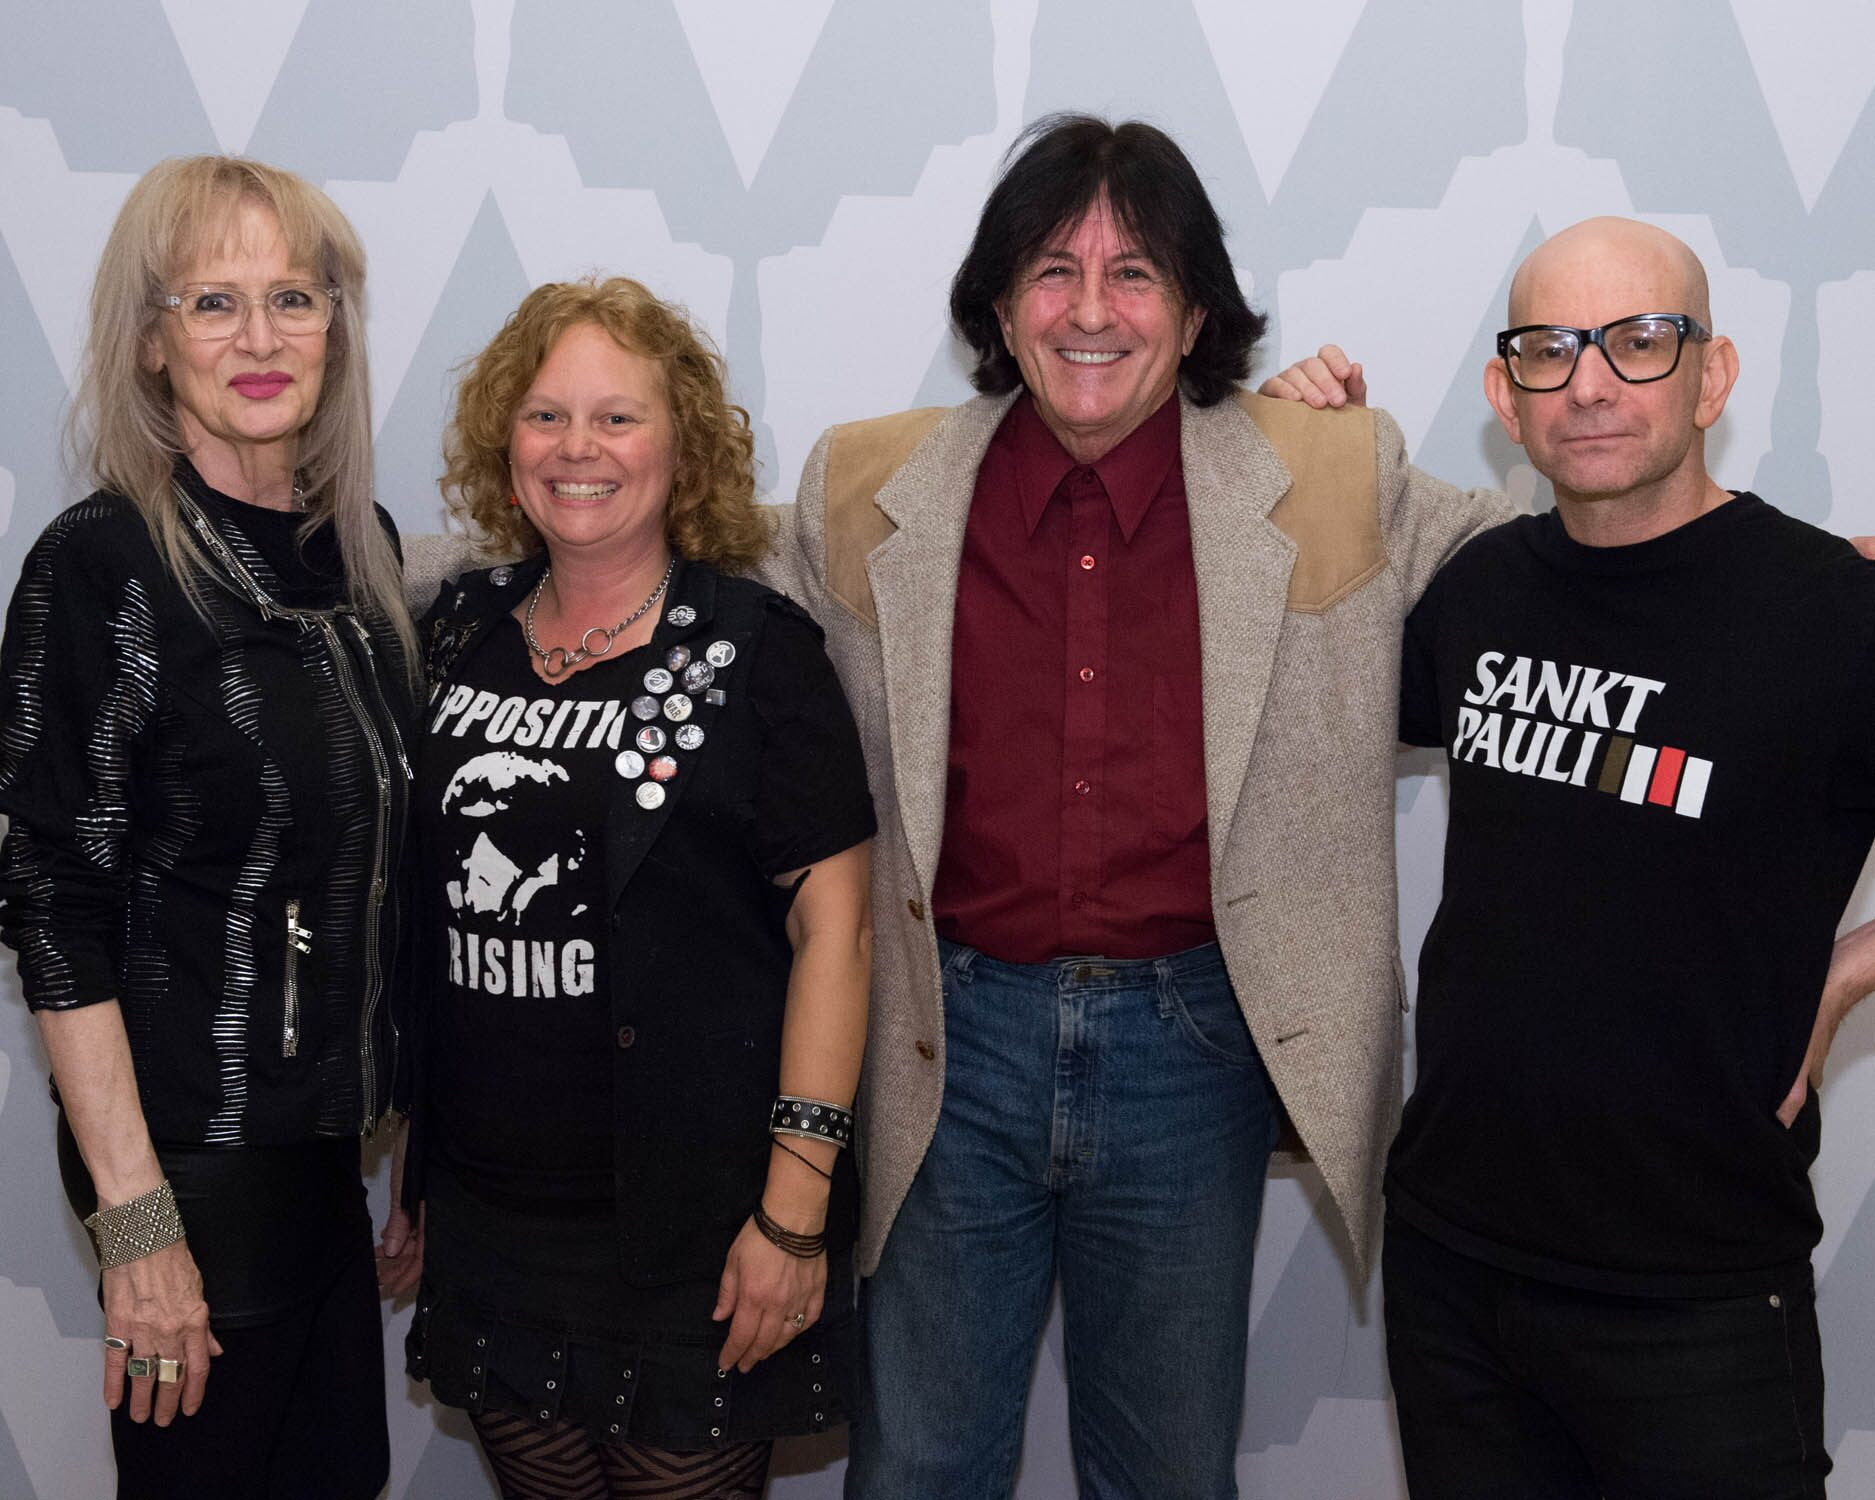 (left to right): director Penelope Spheeris, musician Kristen Patches, musician Lee Ving and musician Greg Hetson.